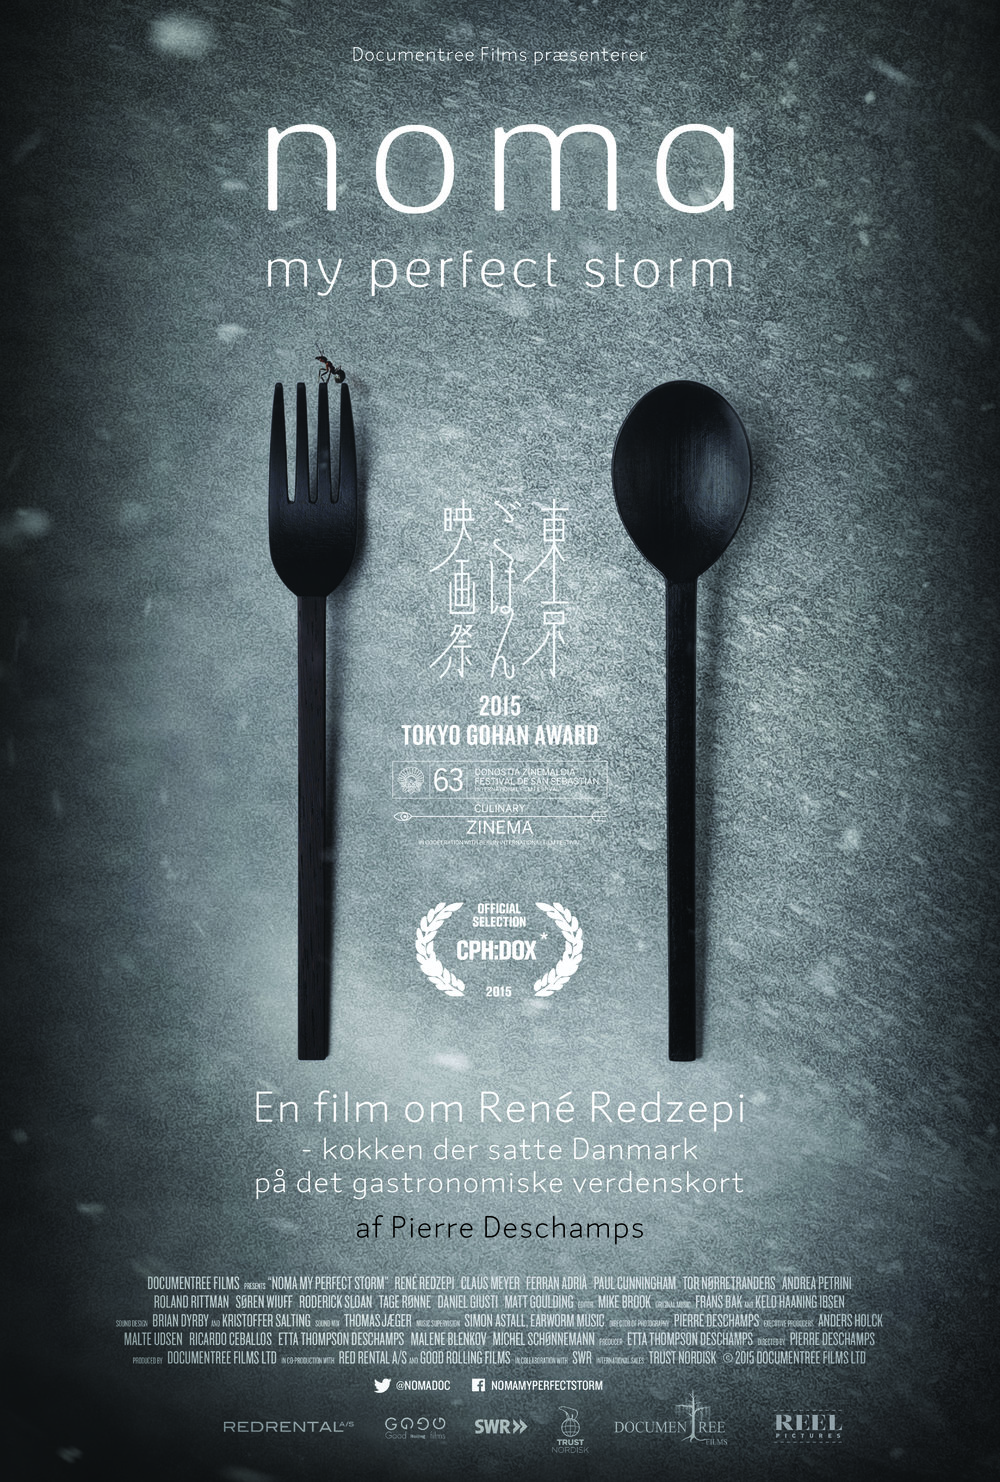 Standard cinema poster -  NOMA my perfect storm